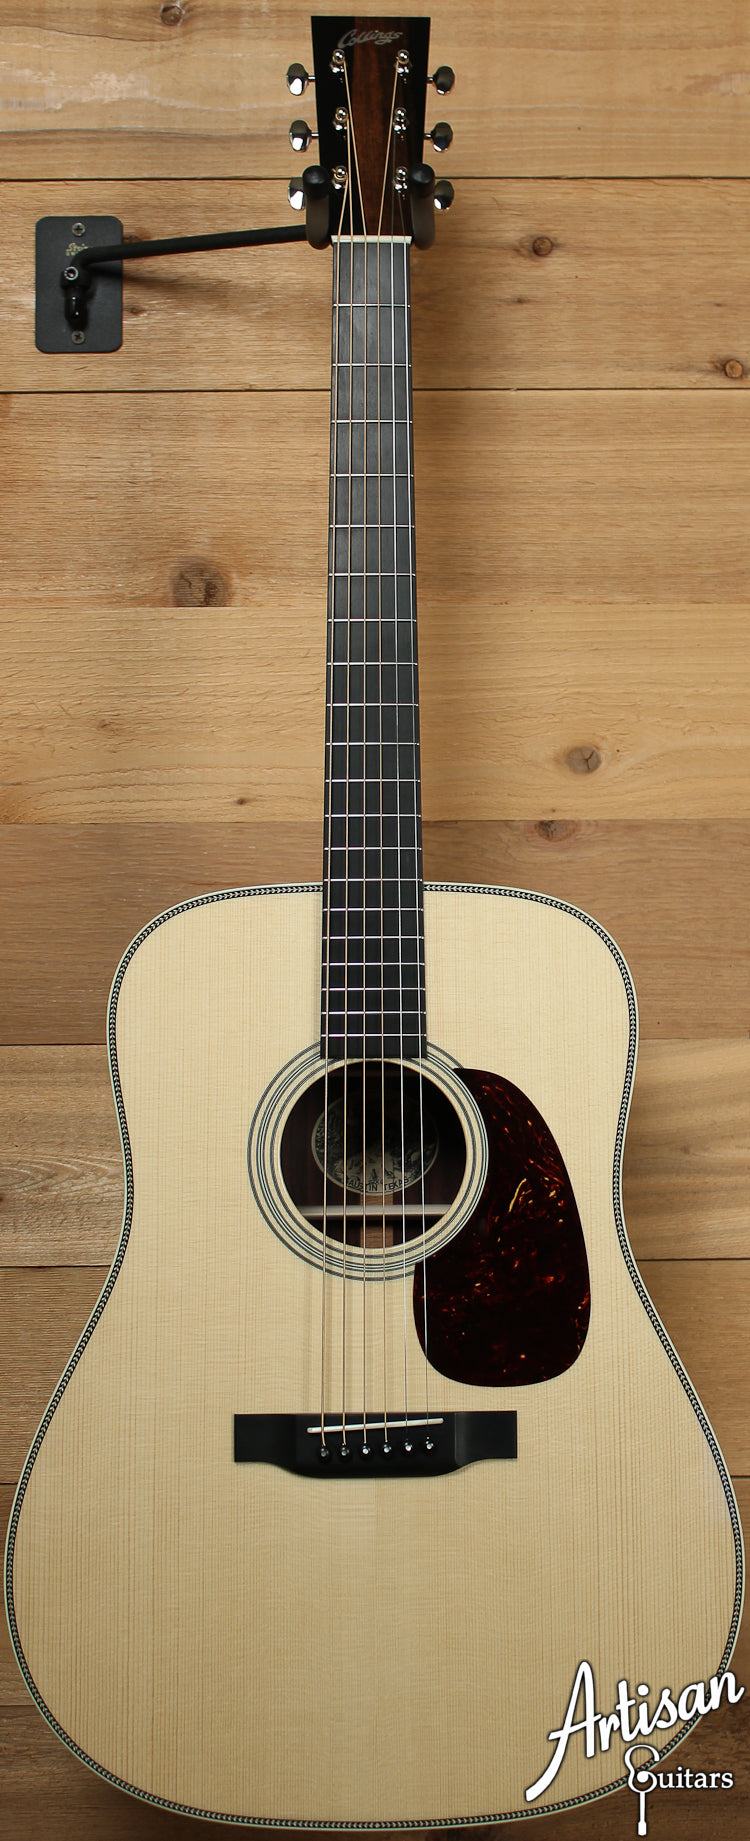 Collings D2HG German Spruce and Indian Rosewood with Adirondack Bracing and No Tongue Brace ID-7099 - Artisan Guitars